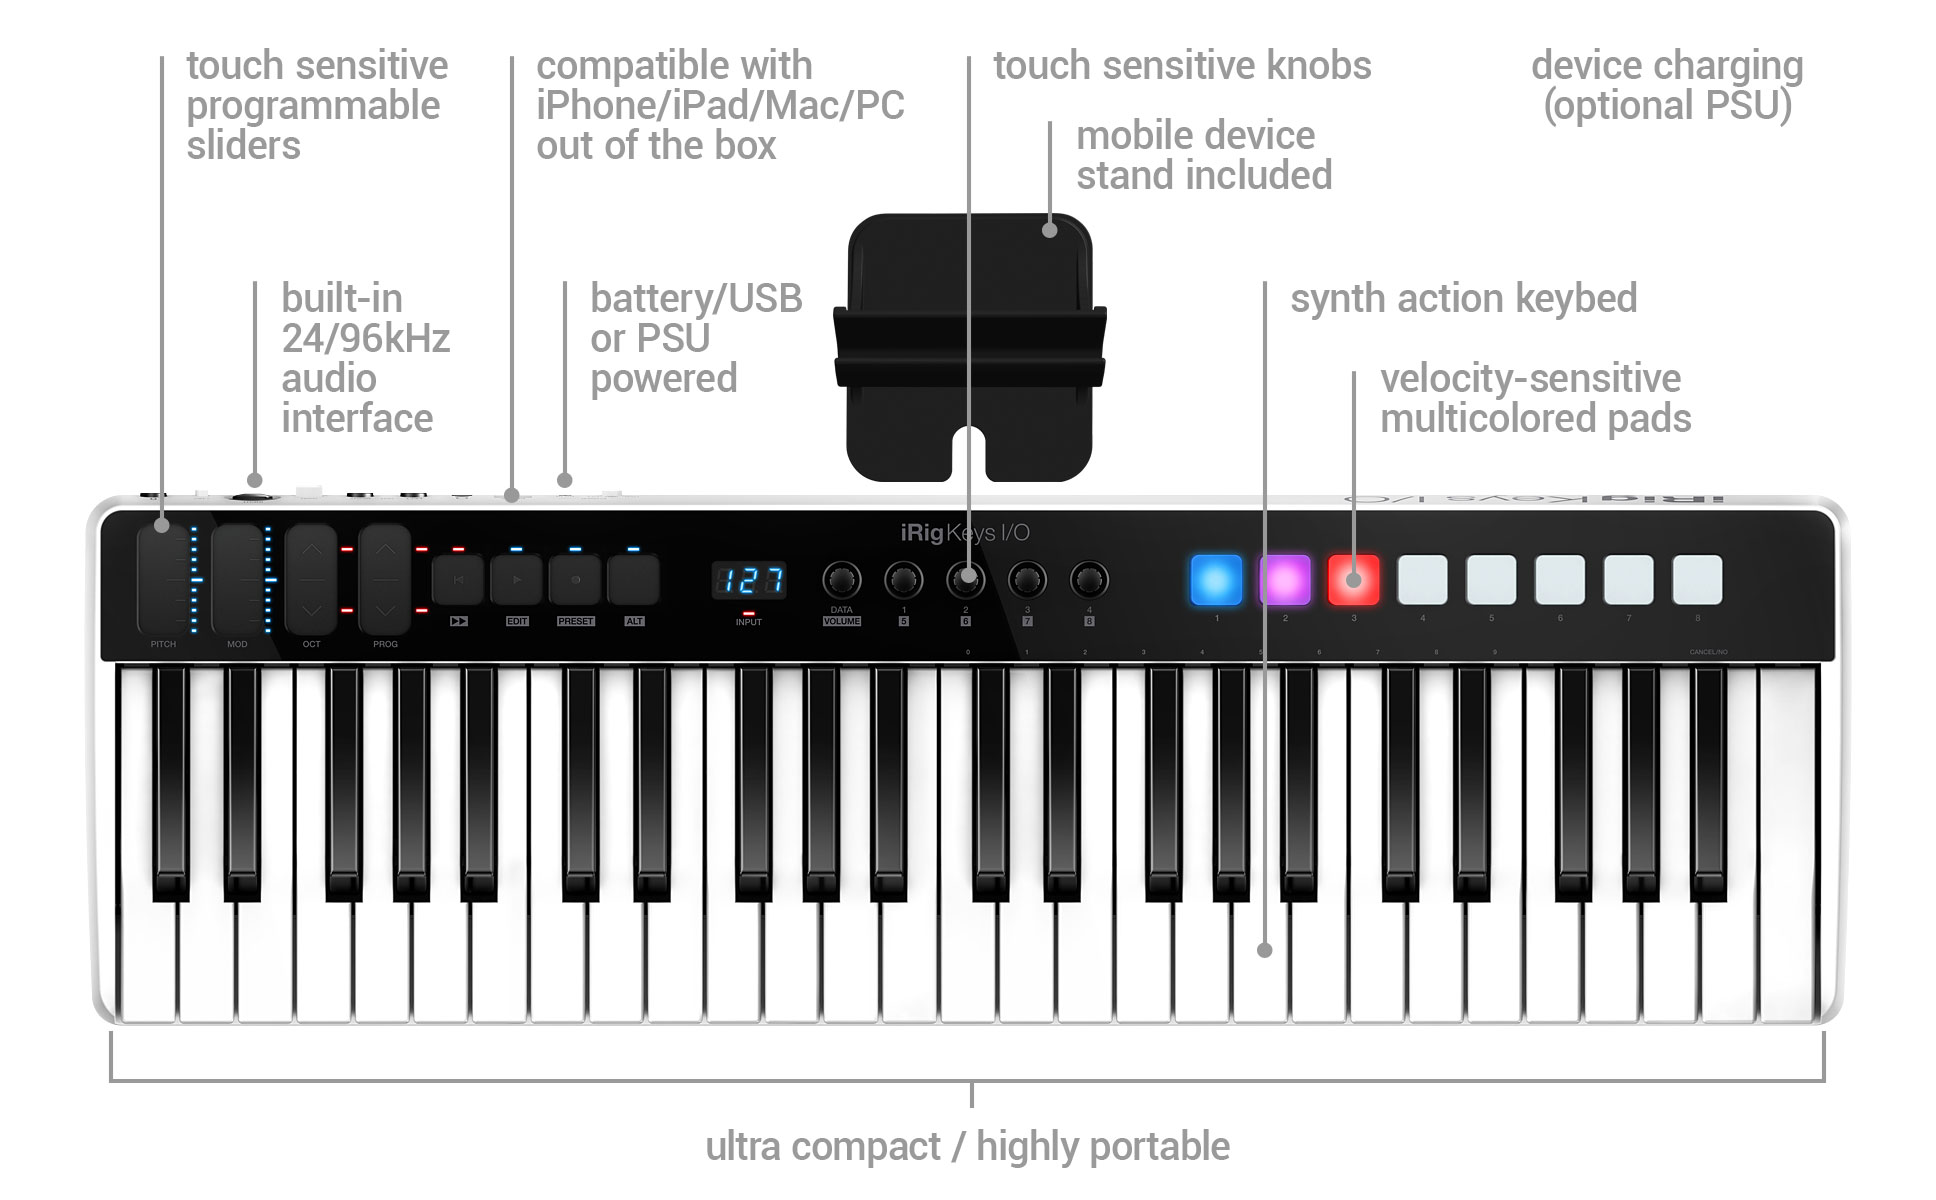 Ik Multimedia Irig Keys I O Raspberry Pi Singapore Low Level Control Startup Guide Together With An Audio Interface Also Packs All The Controls You Would Expect From A Premium Controller Including Velocity Sensitive